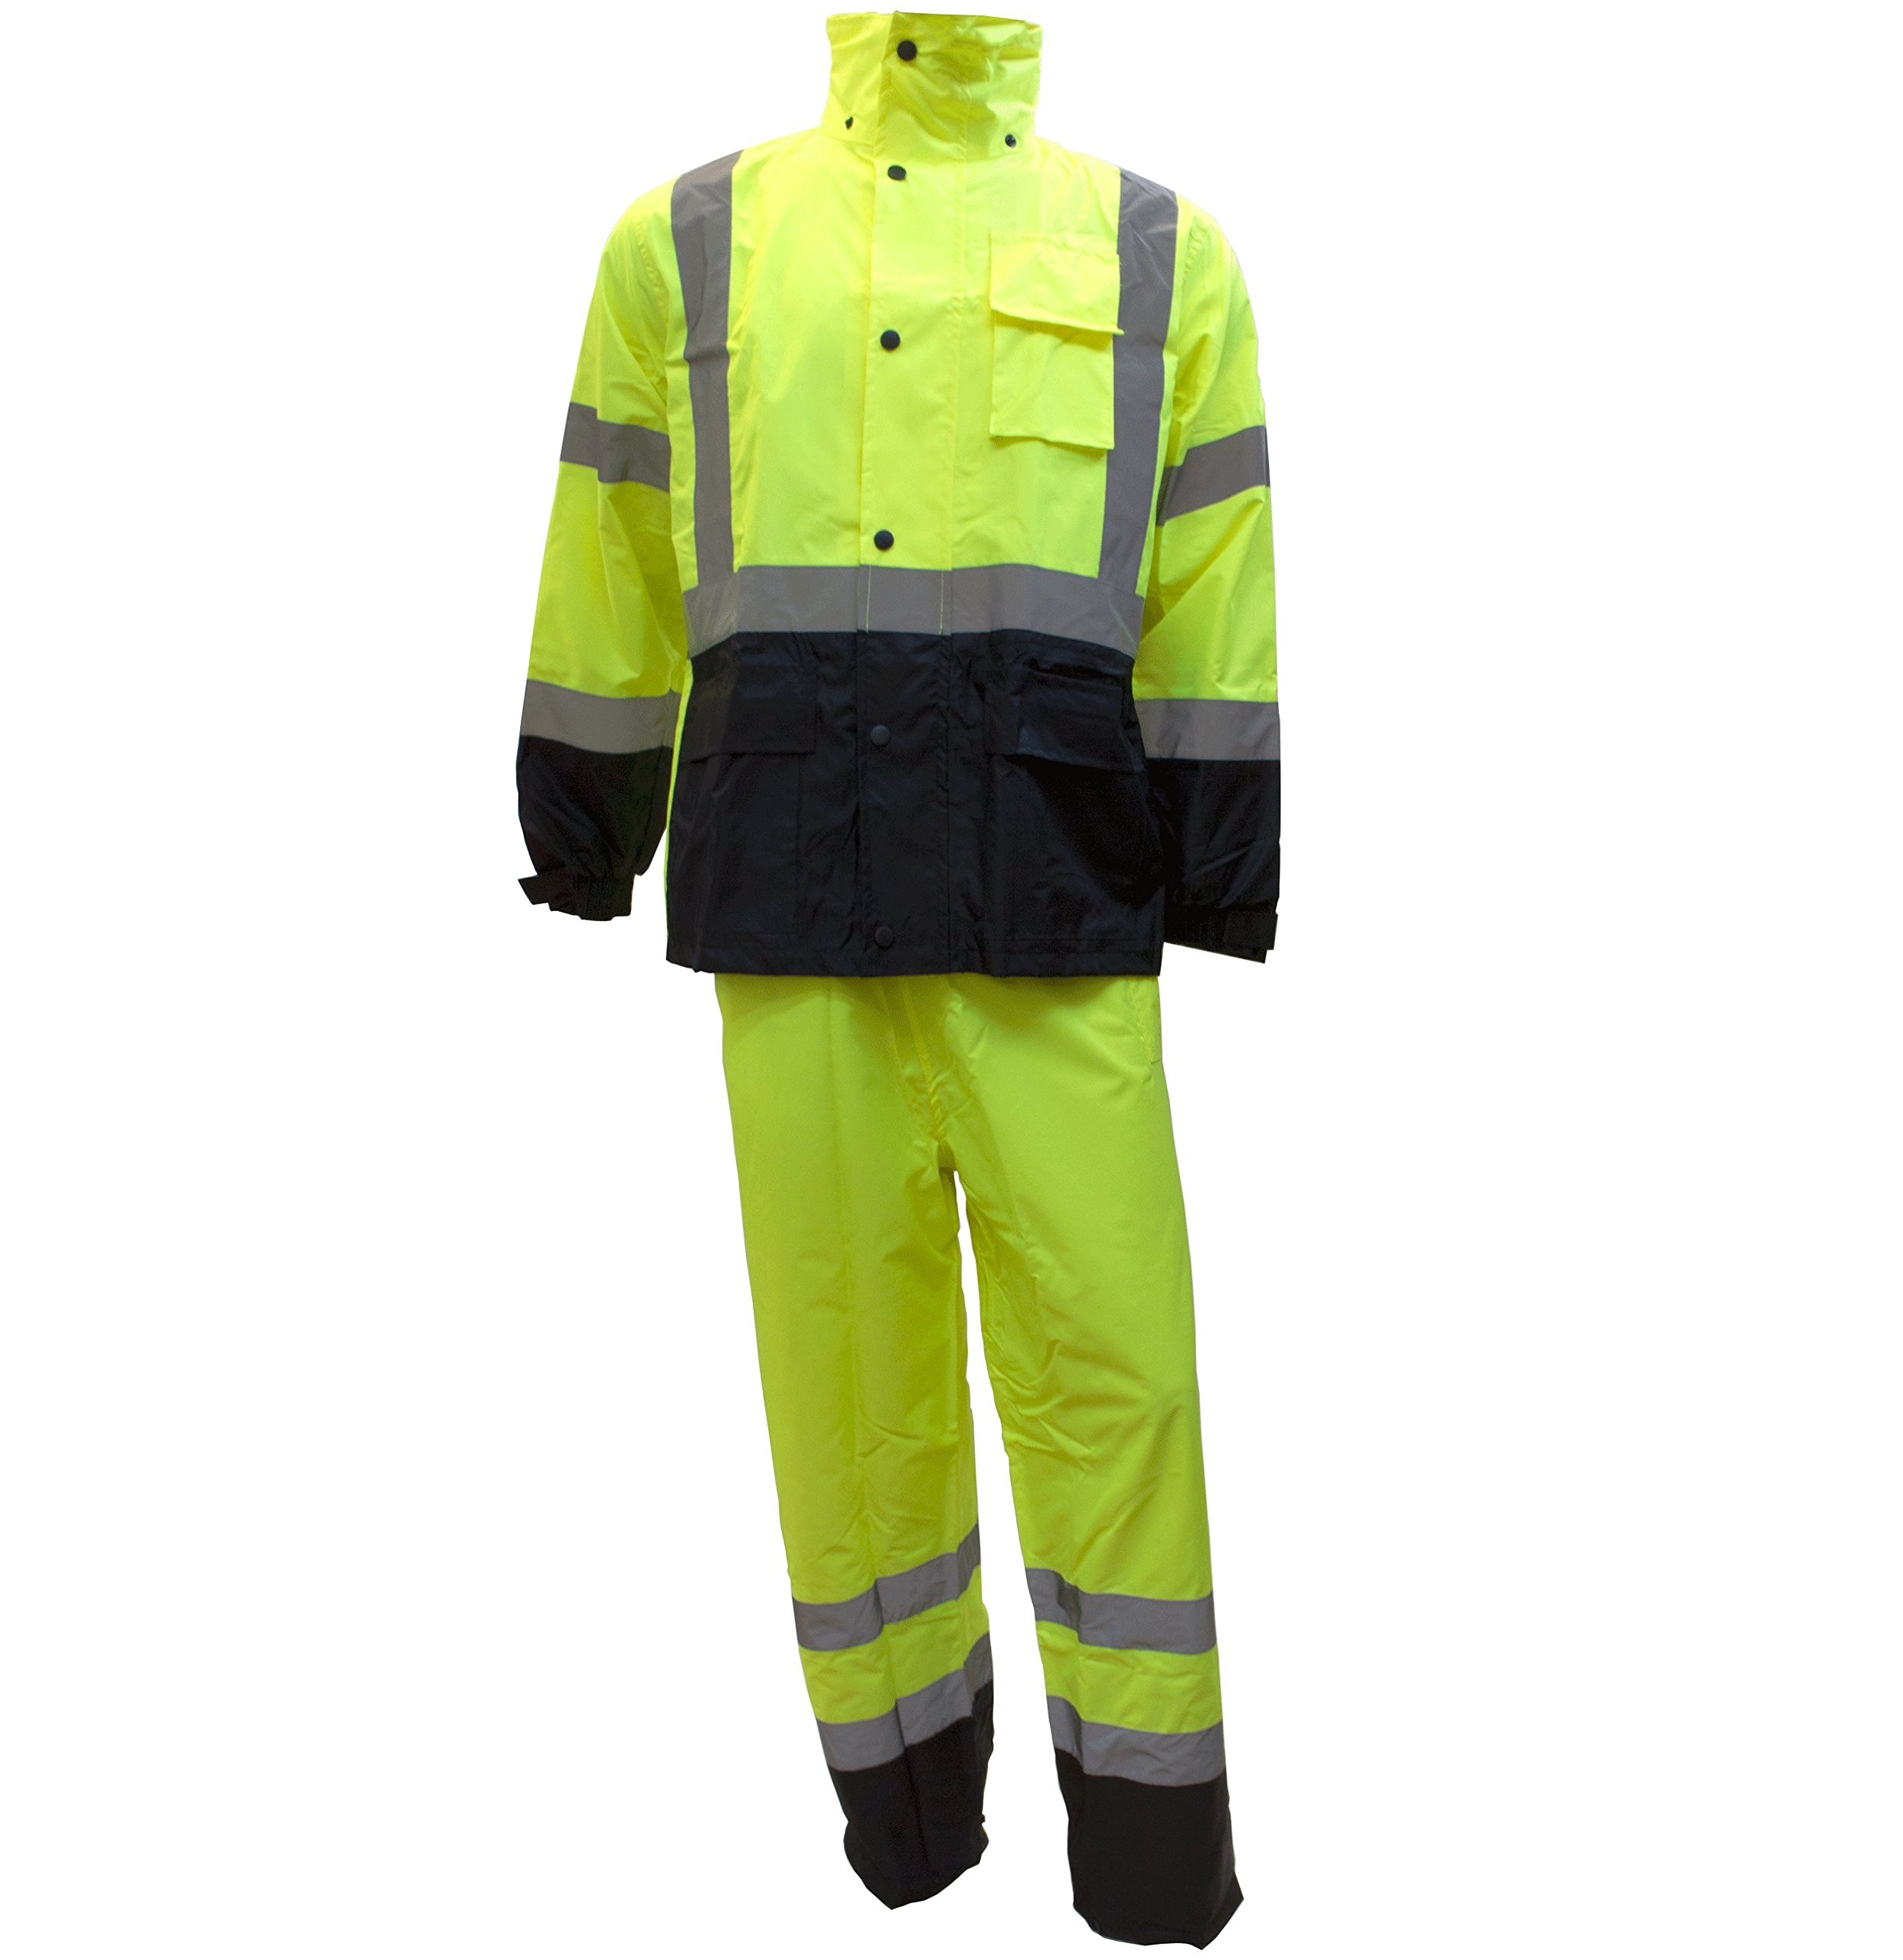 Safety Jacket Visibility Reflective RW CLA3 LM11